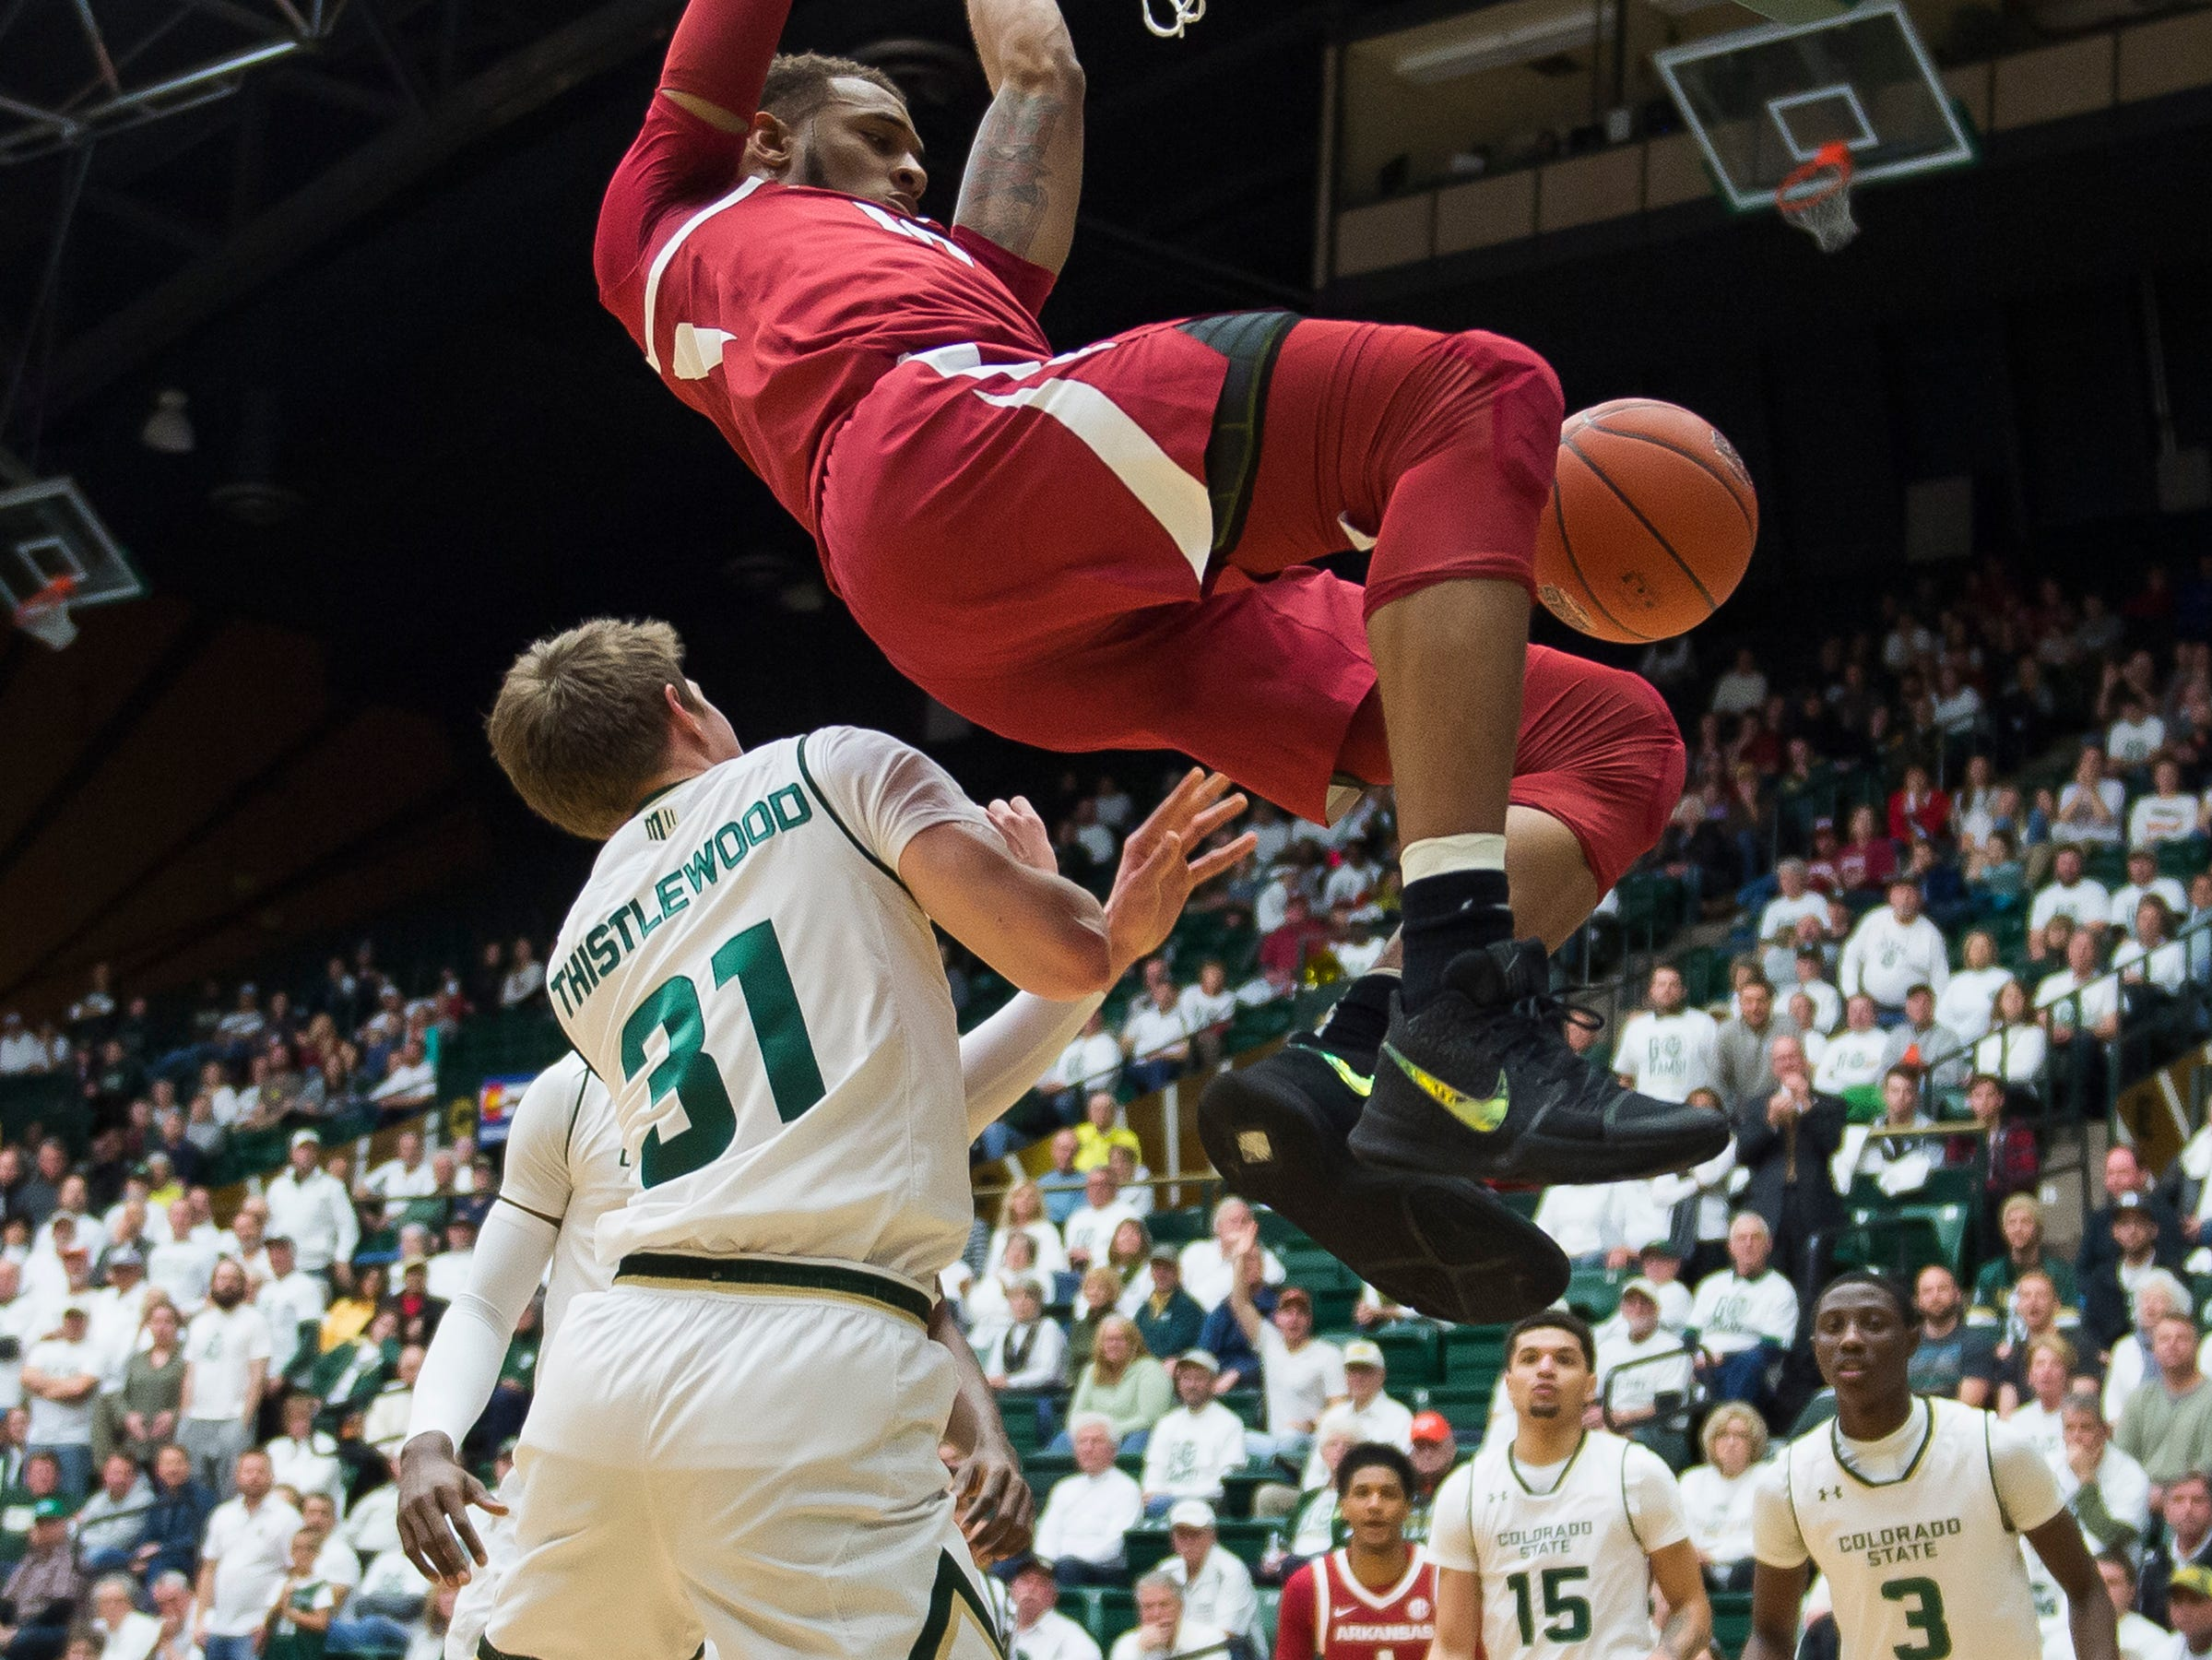 Arkansas sophomore forward Daniel Gafford (10) dunks over Colorado State University freshman forward Adam Thistlewood (31) on Wednesday, Dec. 5, 2018, Moby Arena in Fort Collins, Colo.